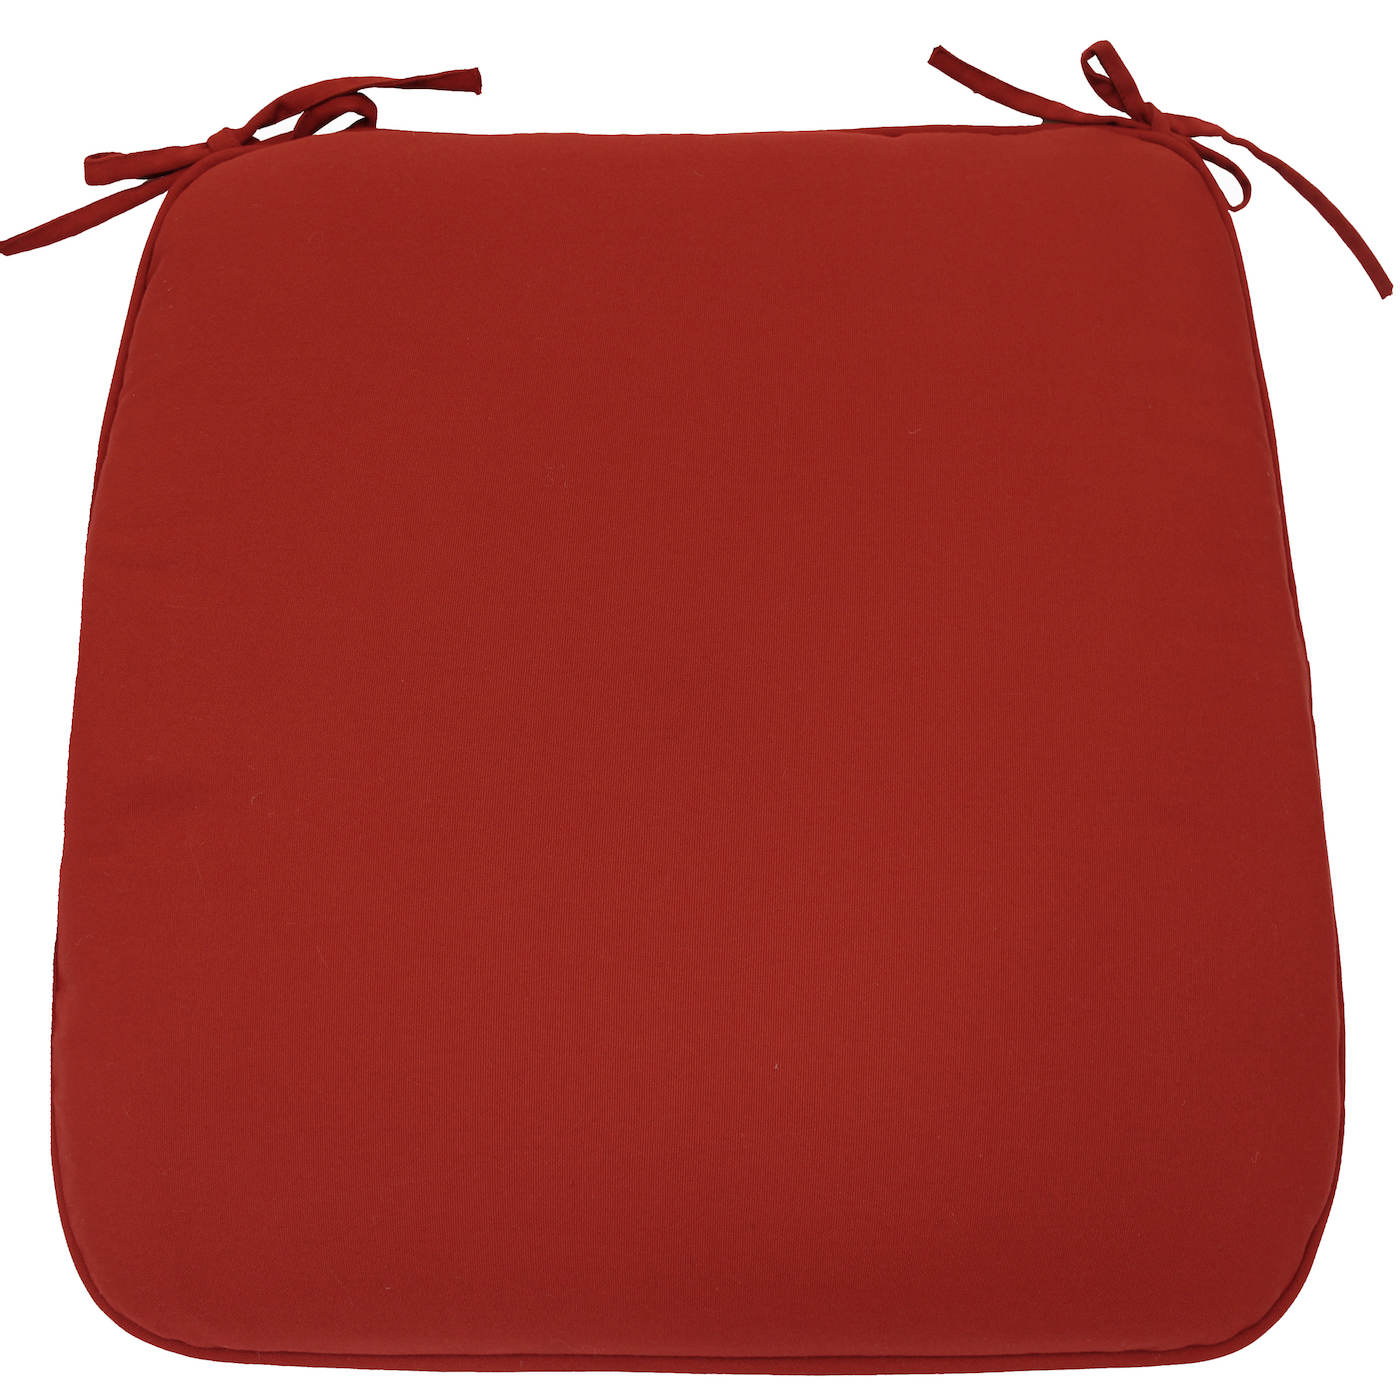 Better Homes and Gardens Red Universal Seat Pad - Set of 2 19 inch x 18 inch x 3 inch